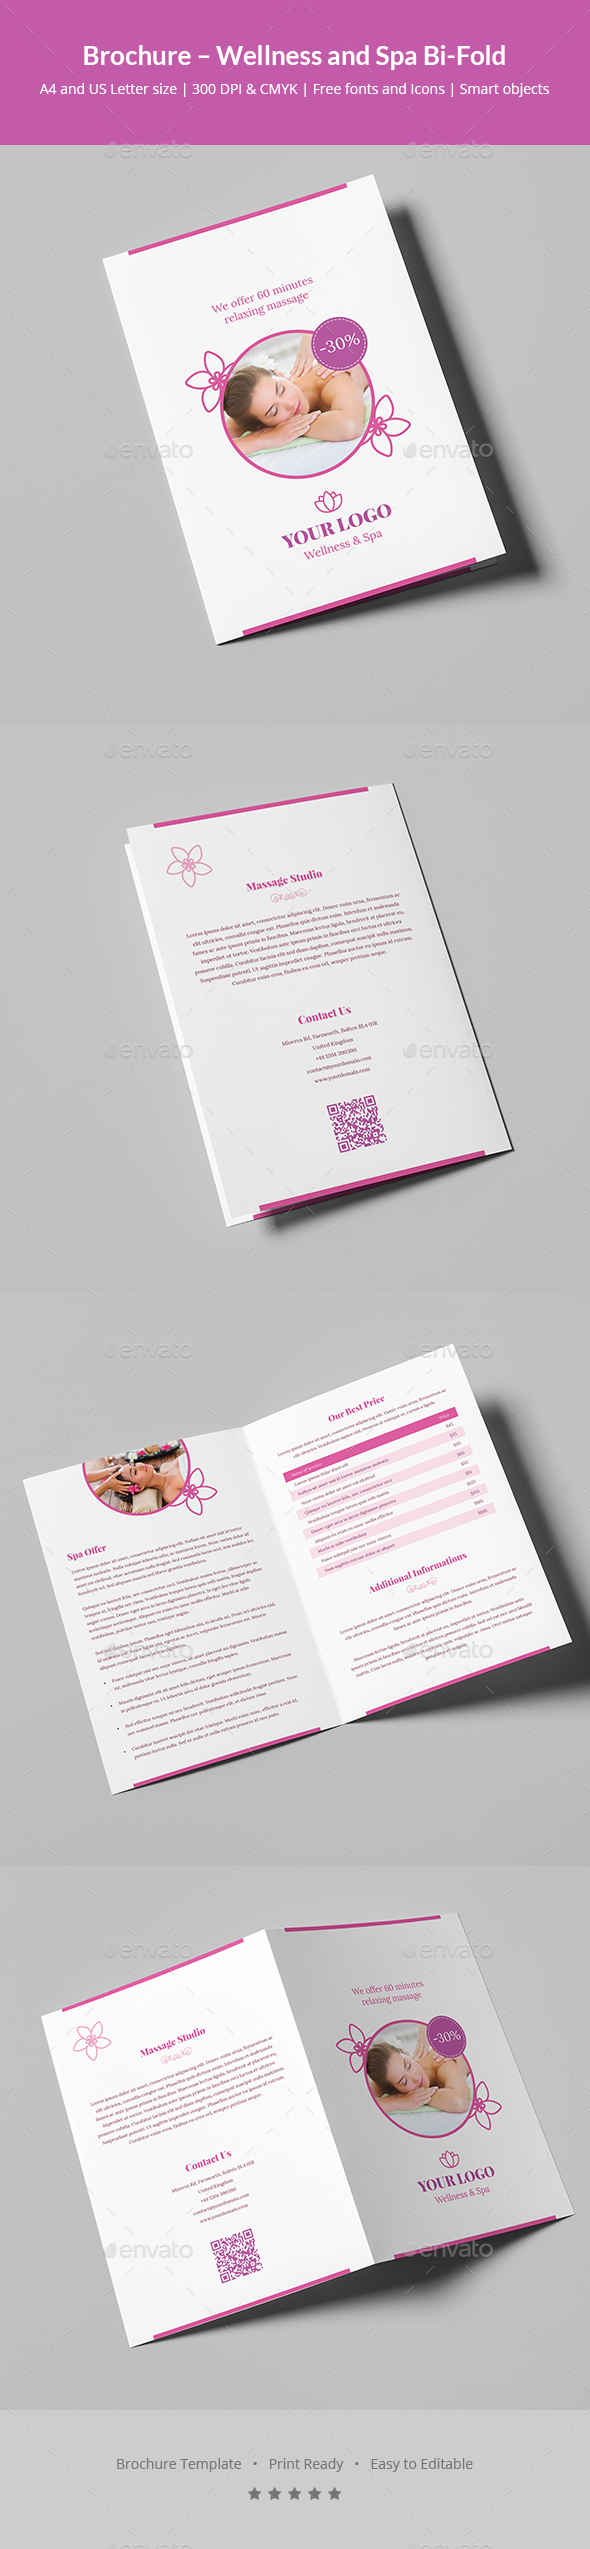 Massage Brochure Graphics, Designs & Templates from GraphicRiver